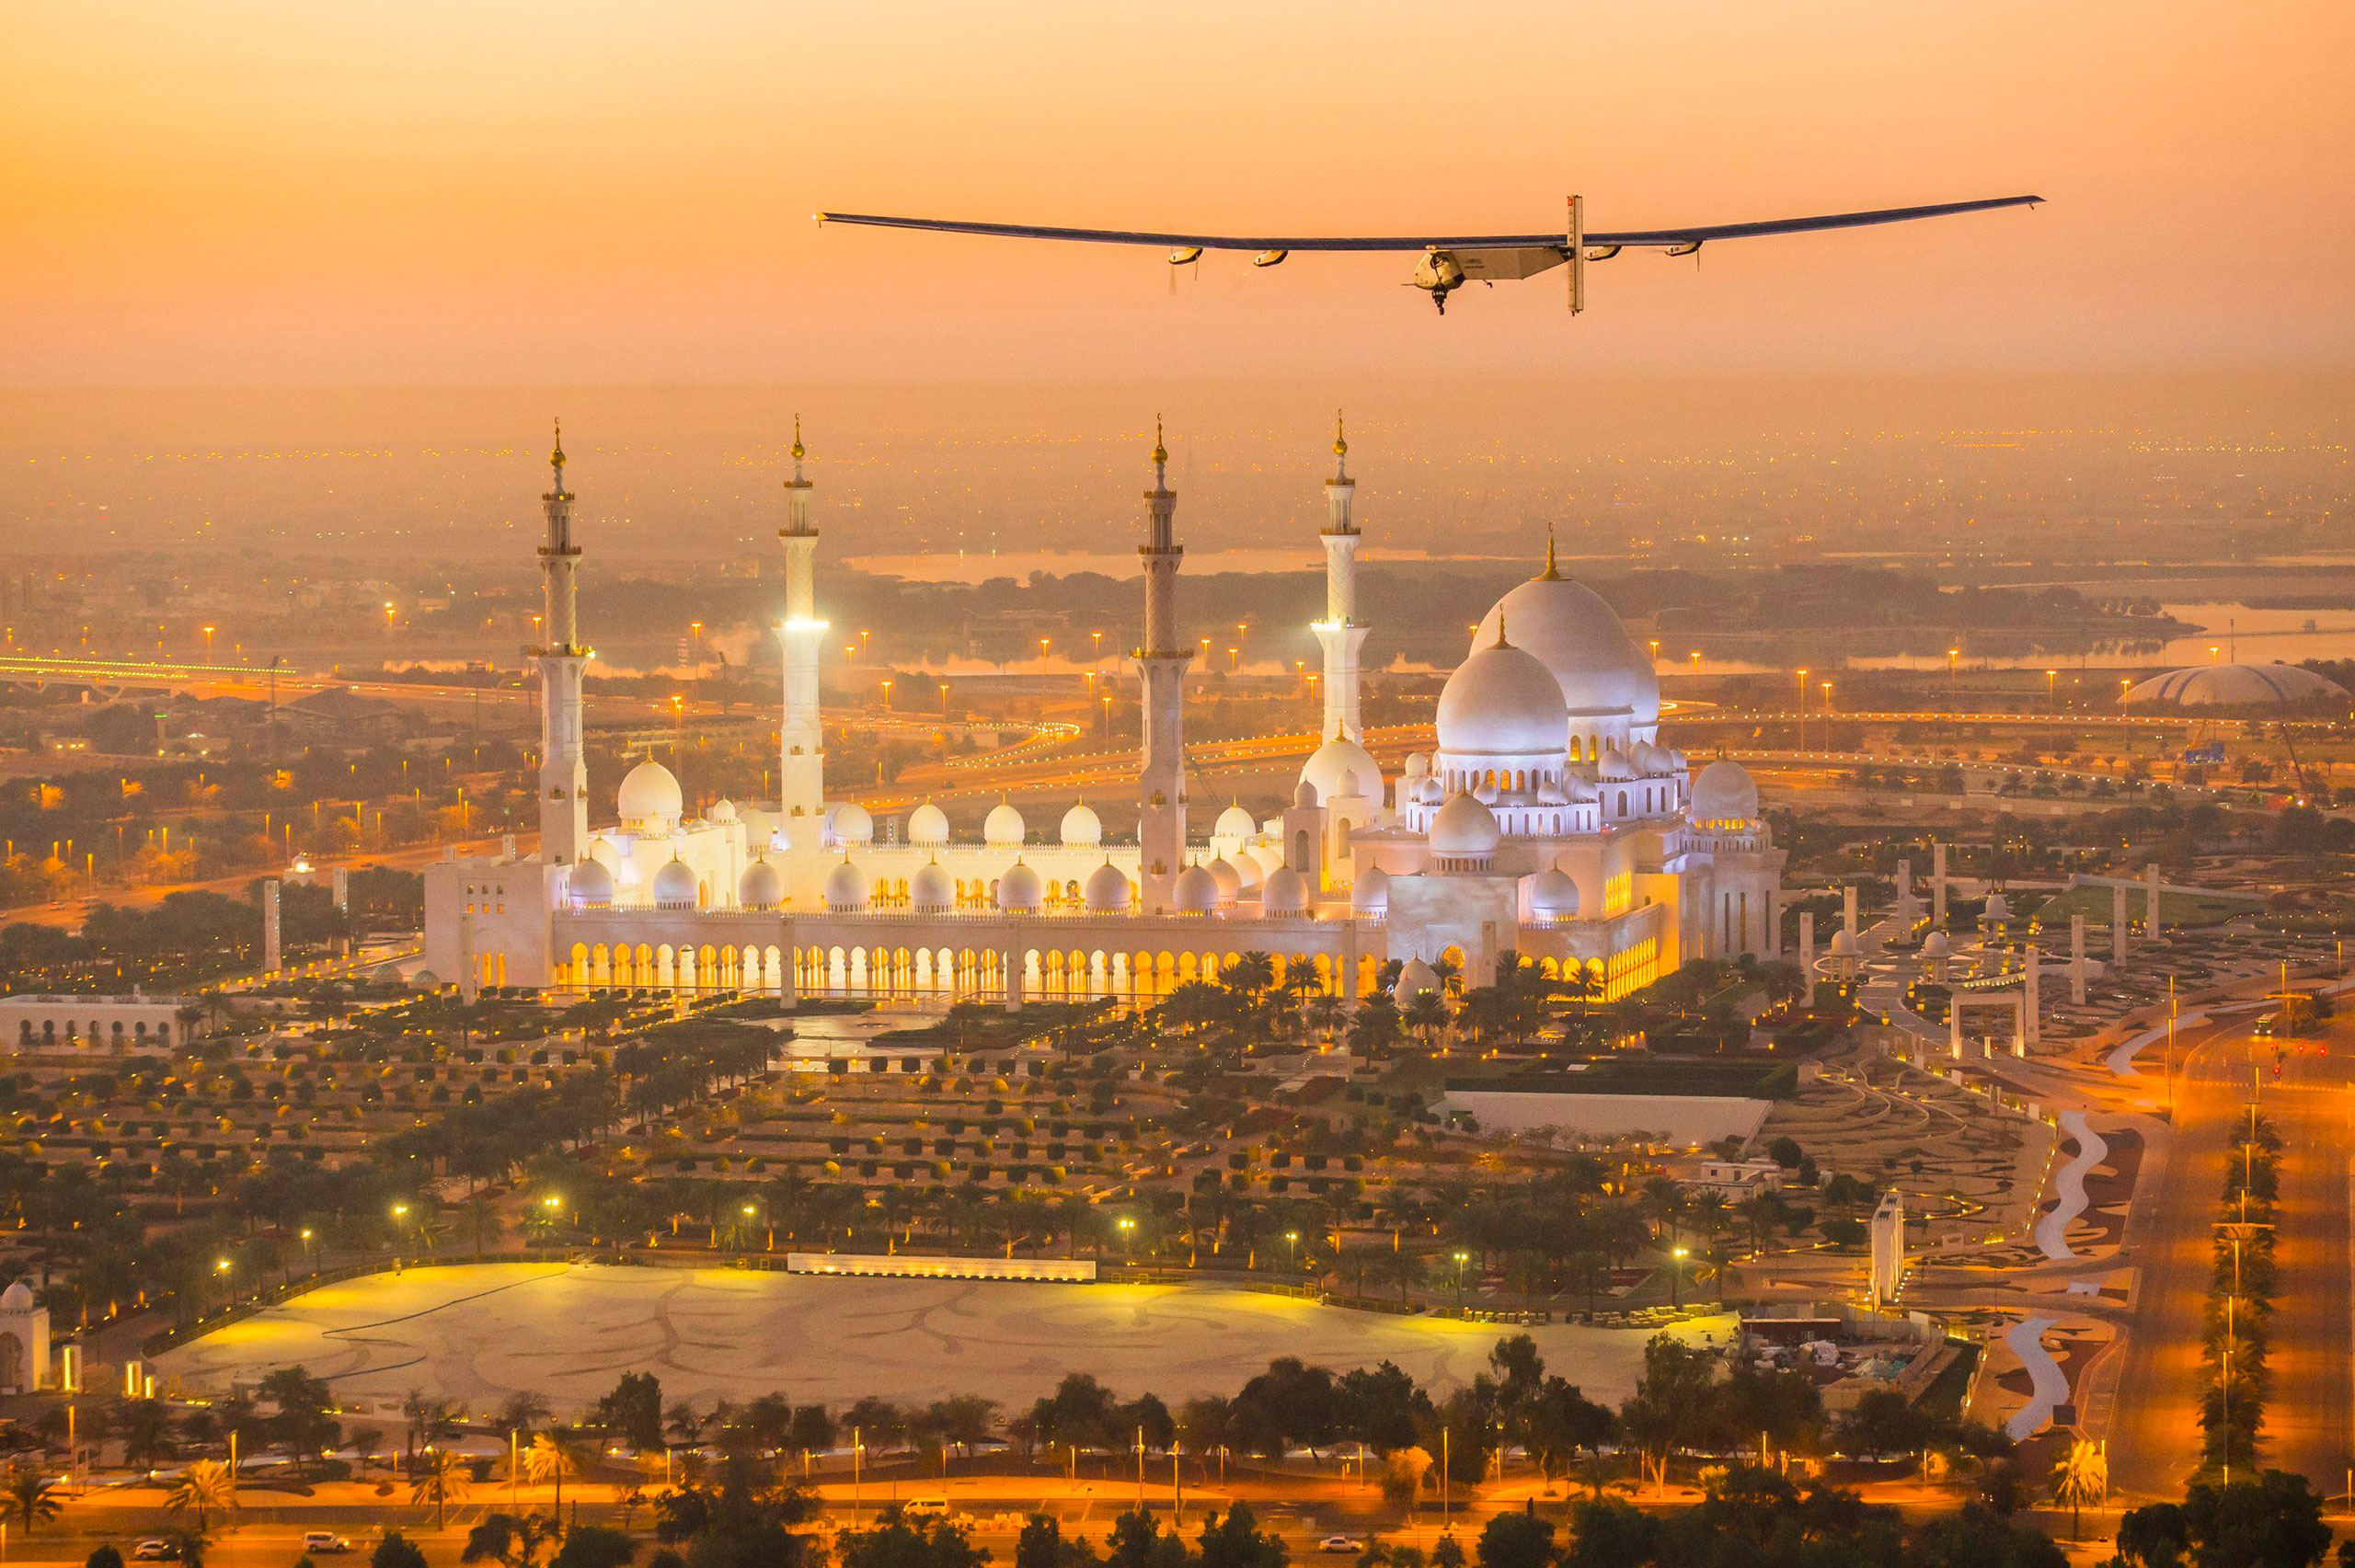 The Solar Impulse 2, a solar-powered plane, flies over the Sheikh Zayed Grand Mosque in Abu Dhabi during preparations for next month's round-the-world flight on Feb. 26, 2015.